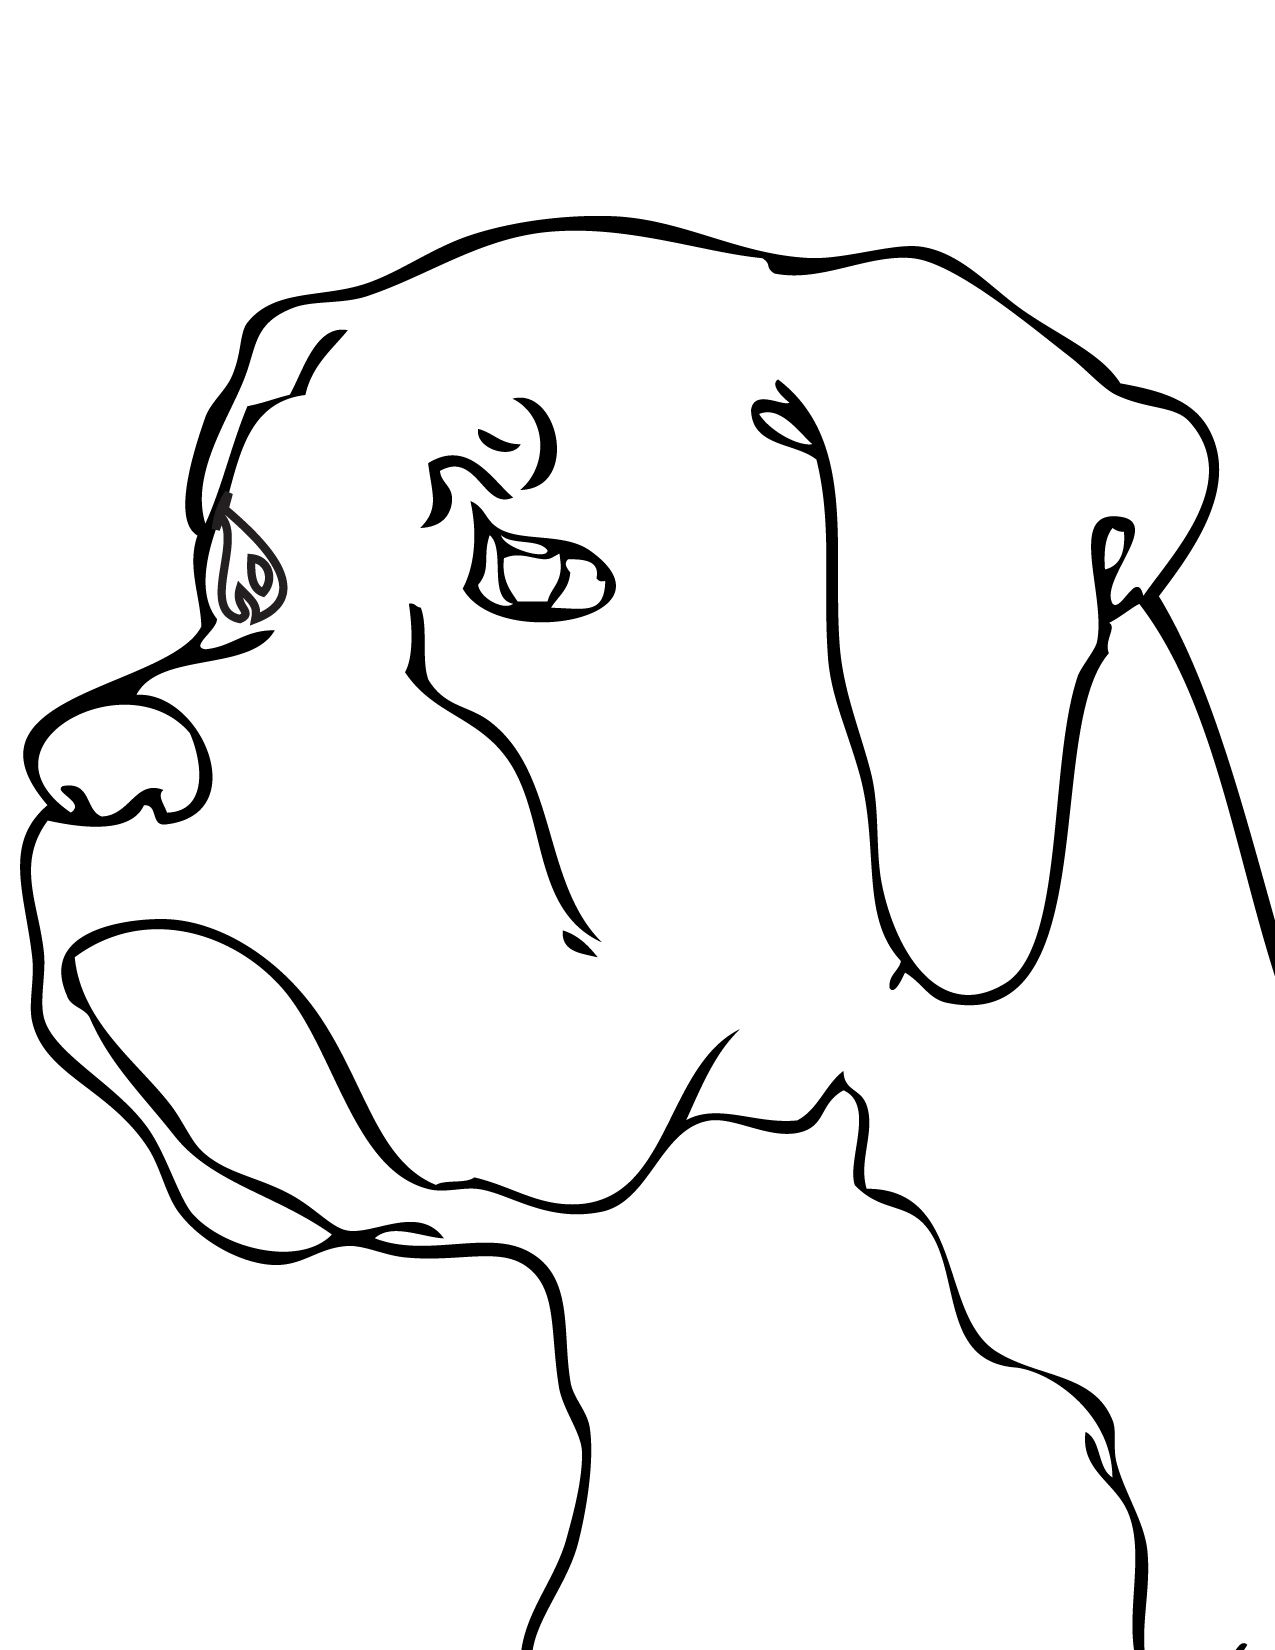 Line Drawing Of A Boxer Dog : Boxer dog line drawing at getdrawings free for